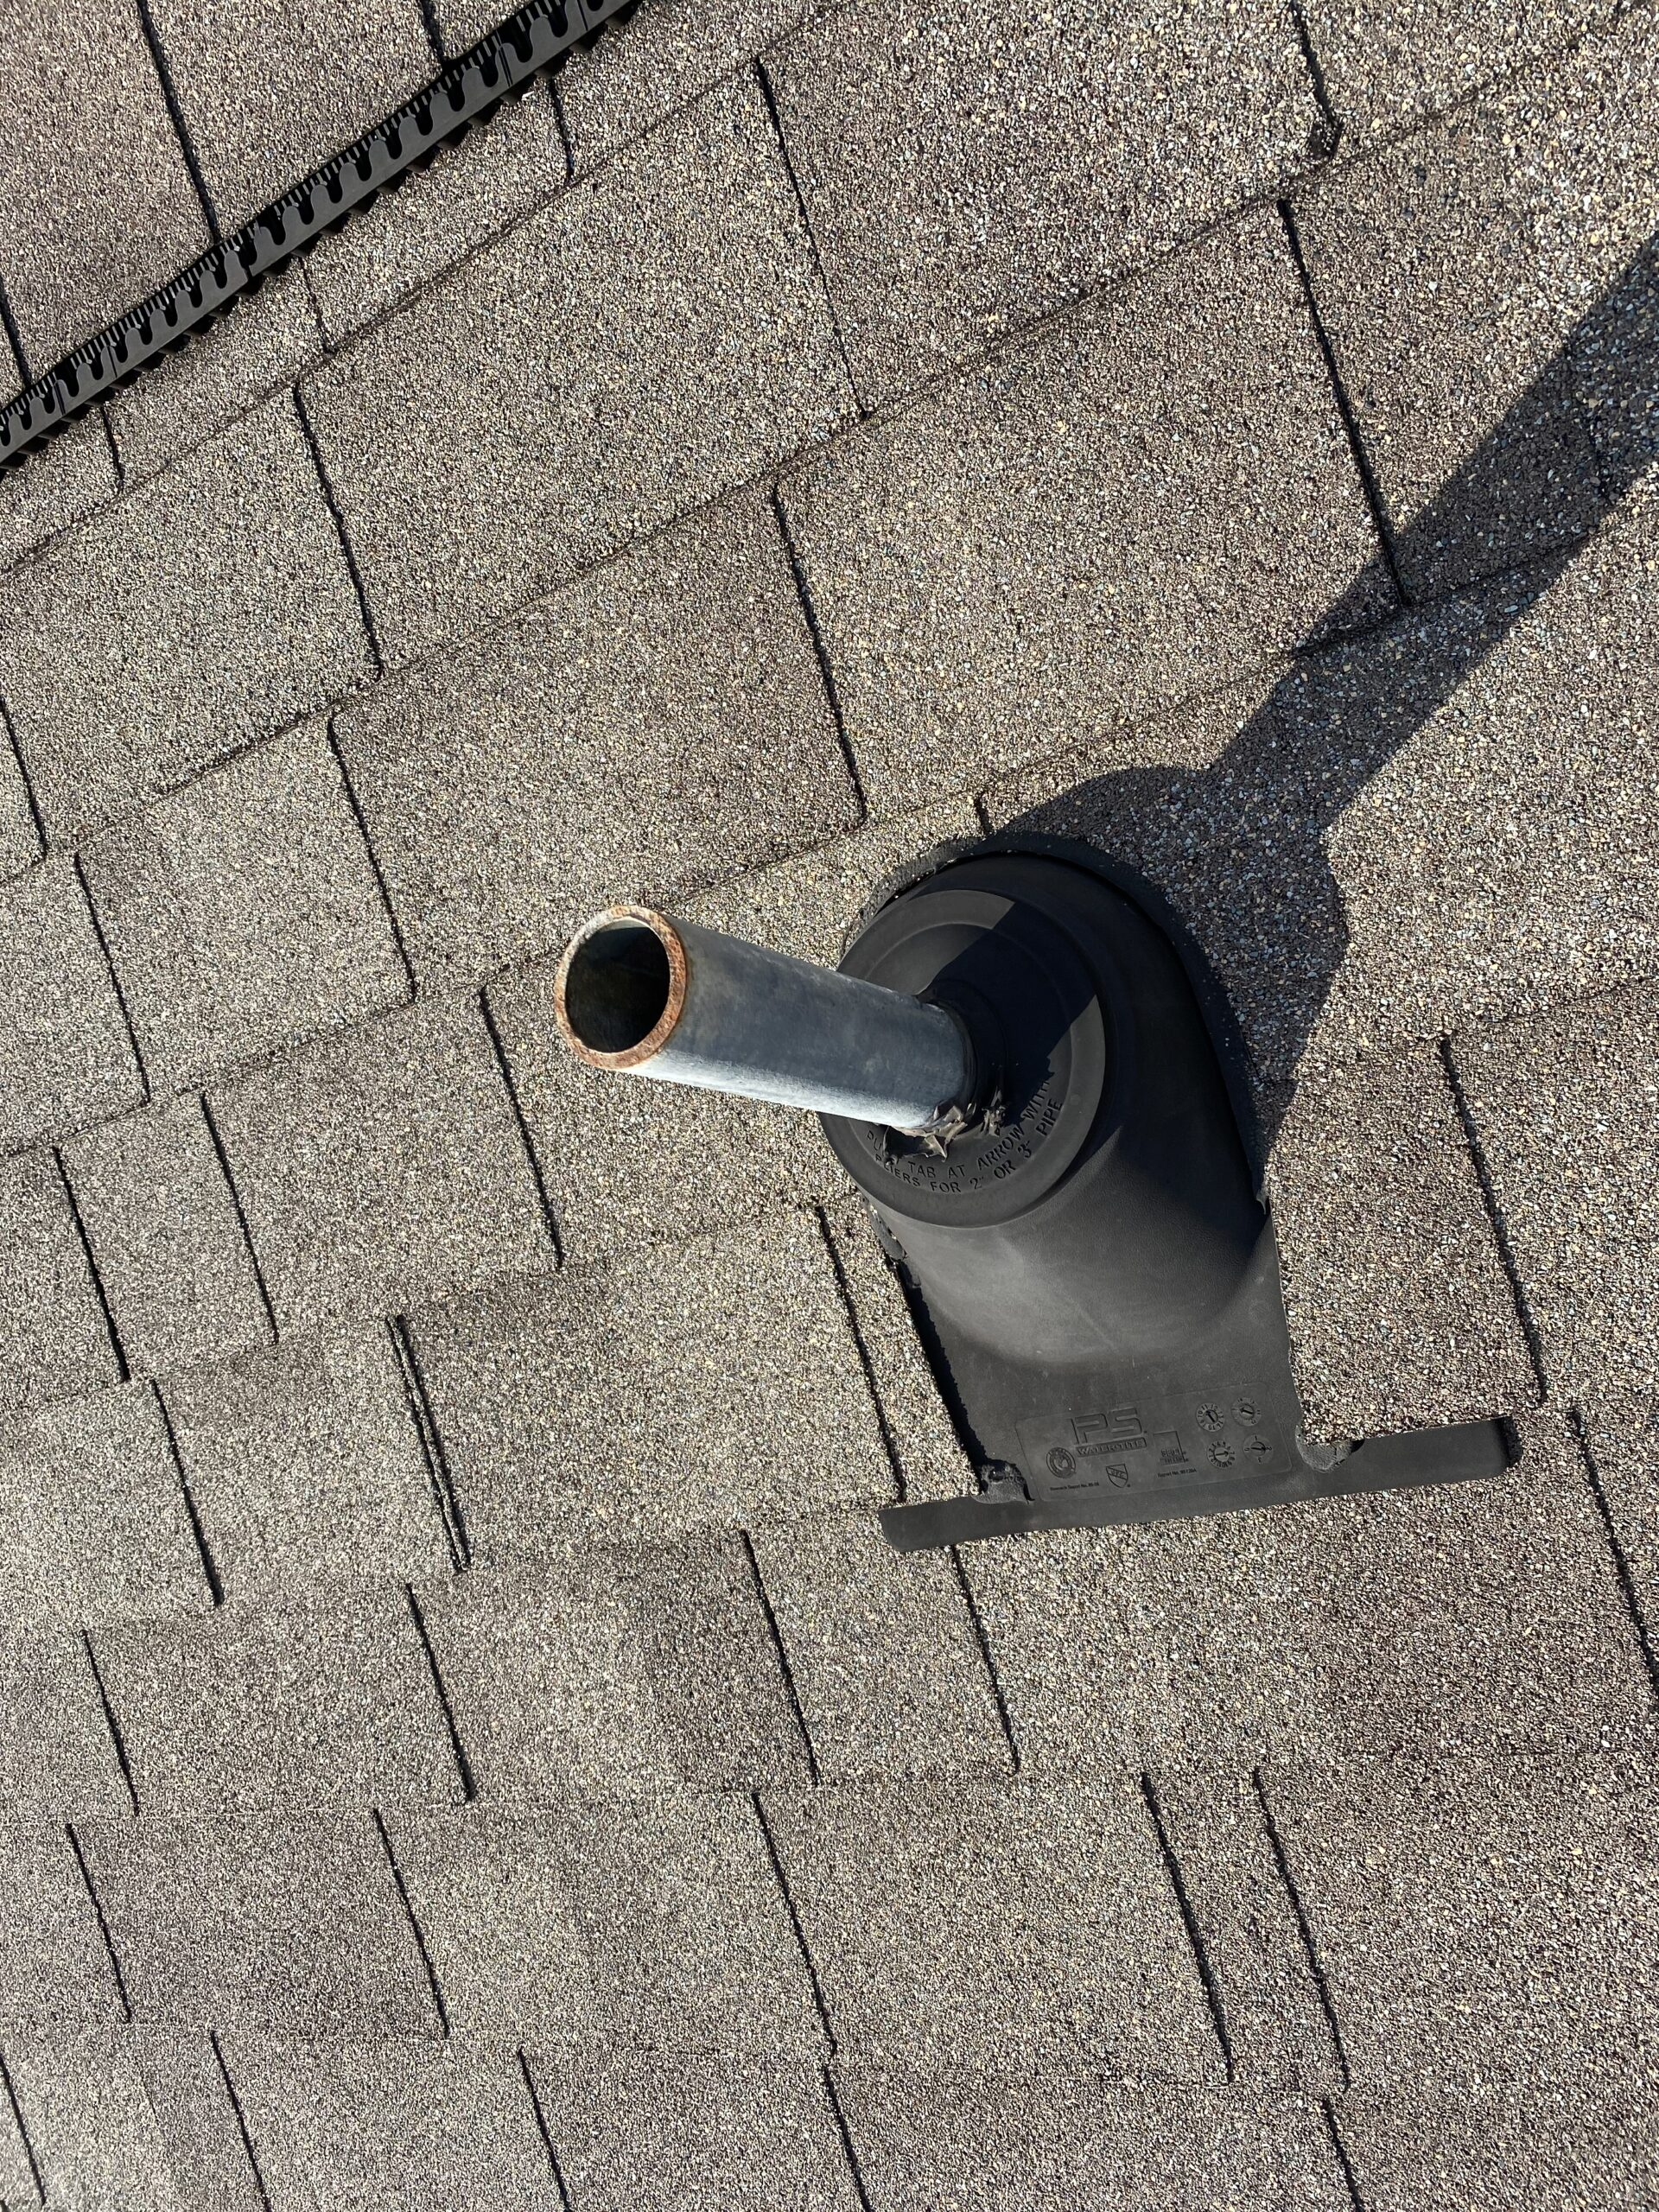 This is a picture of a brown roof with a pipe boot that needs some work